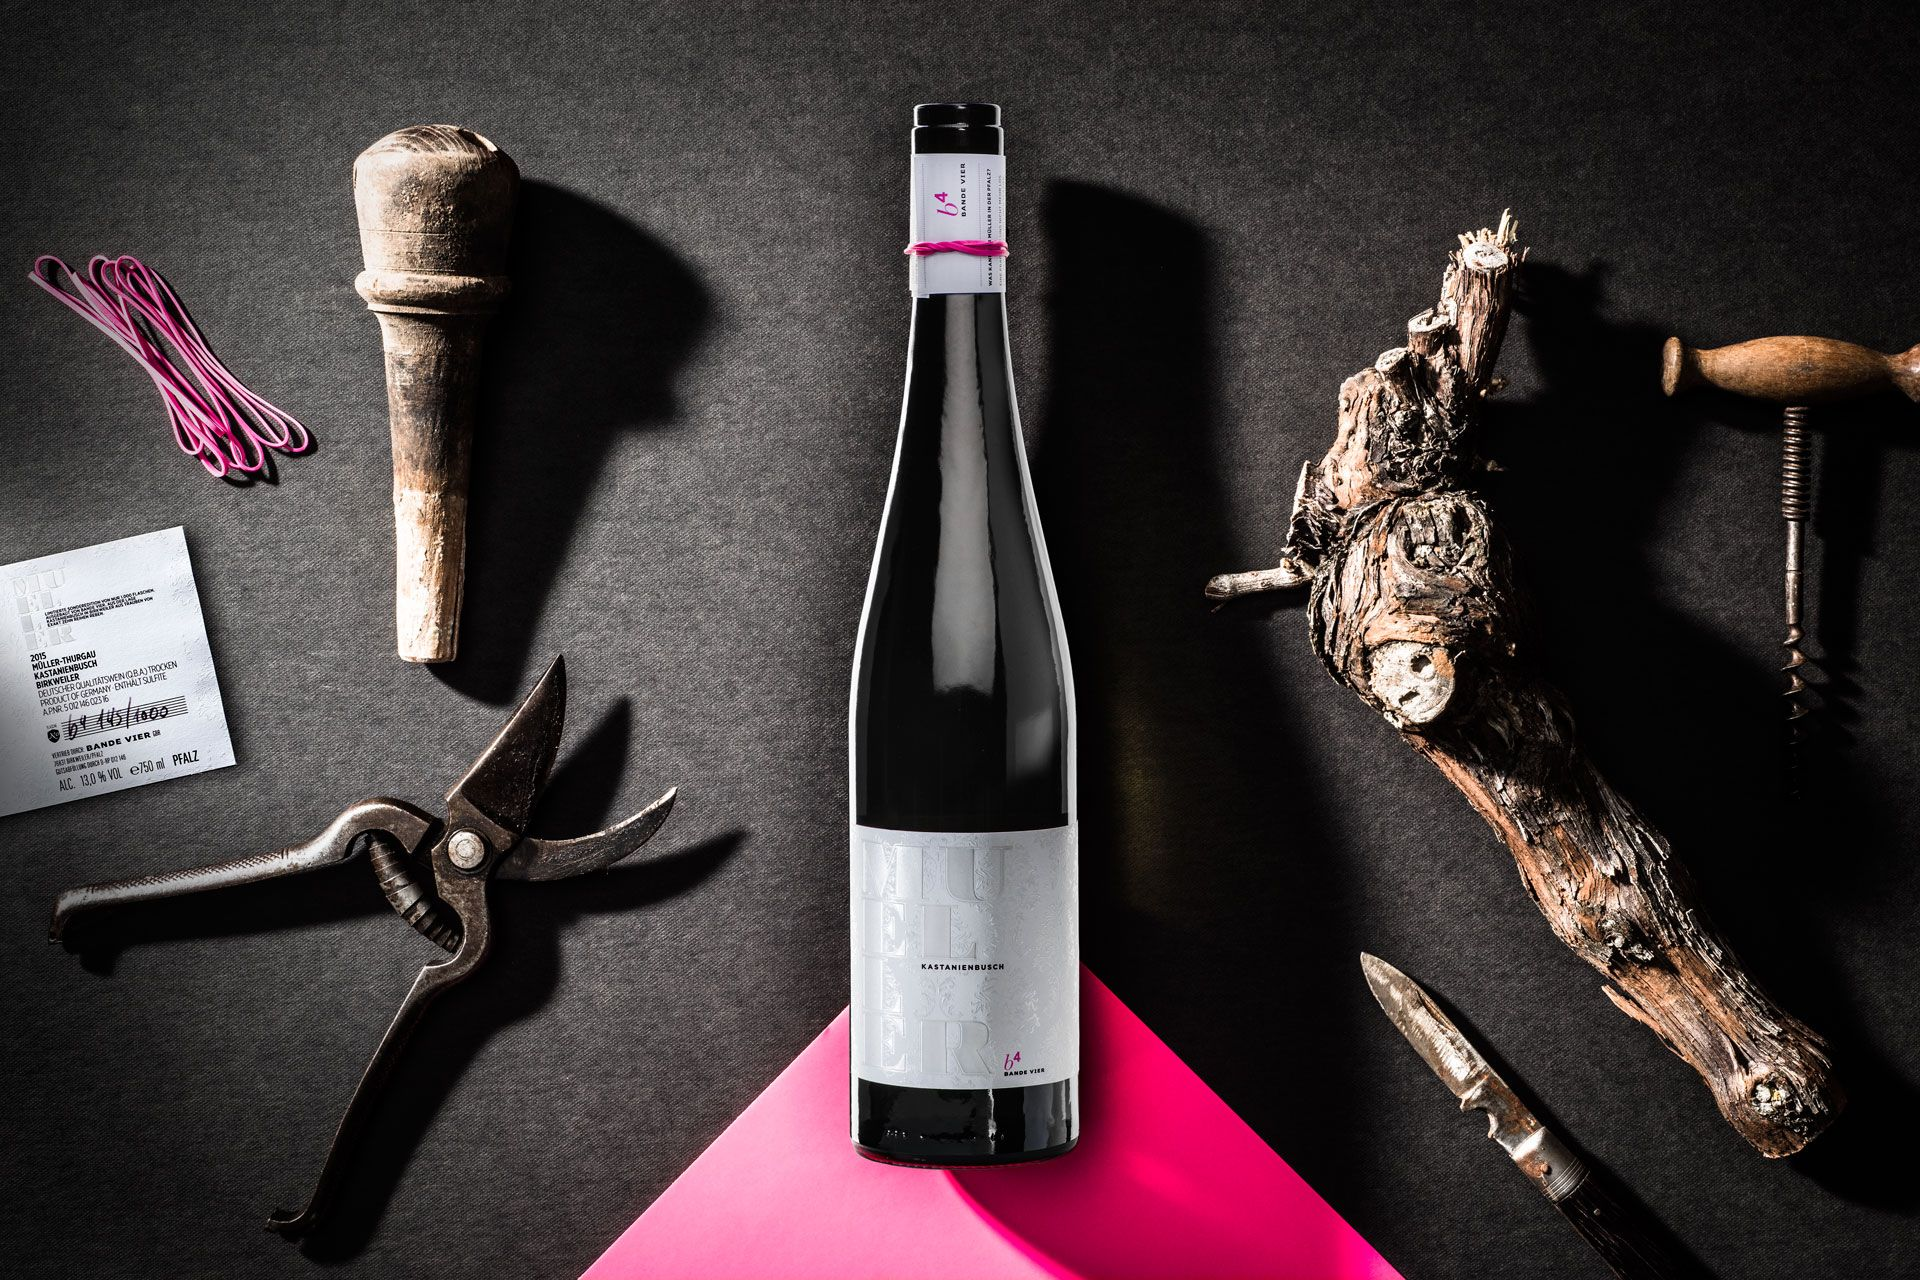 Branding and packaging design by www.magneticstories.com for the Mueller – a unique and stunning wine from the southern Palatinate in Germany.  #packaging #design #packagingdesign #branding #wine #graphicdesign #embossed #awesome #magneticstories